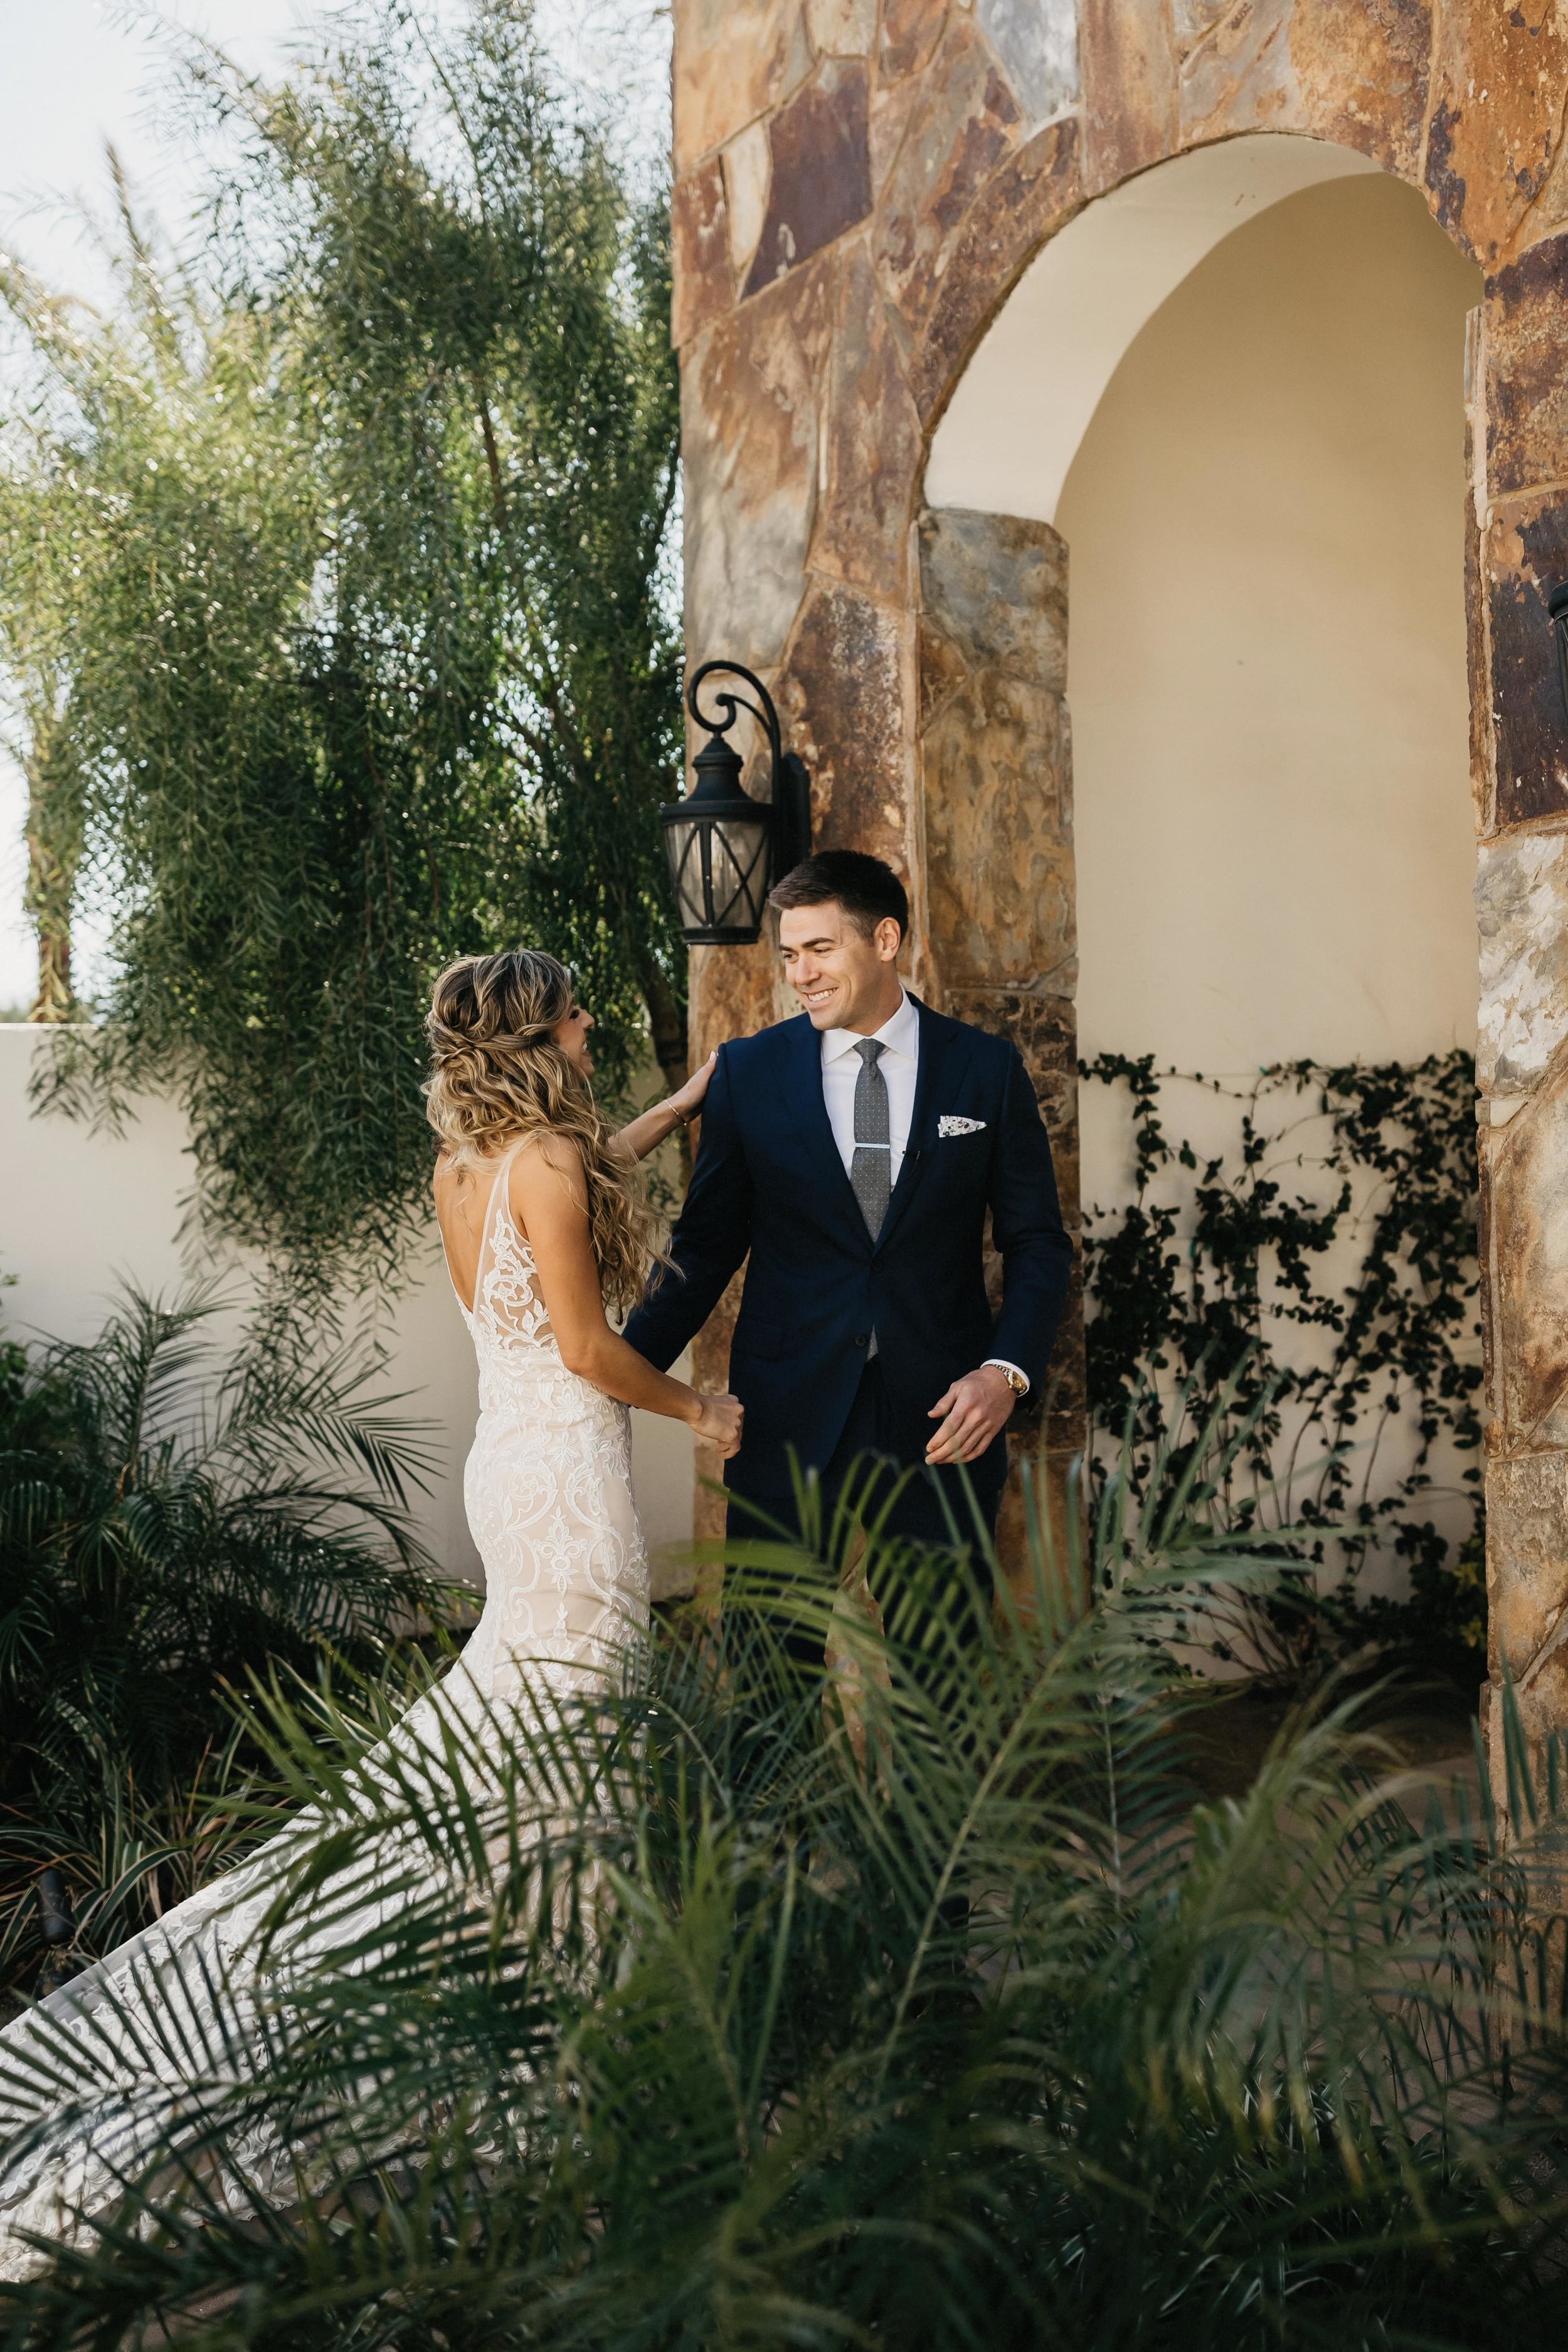 Dustin+Jamie_Wedding-162-Final-min.jpg